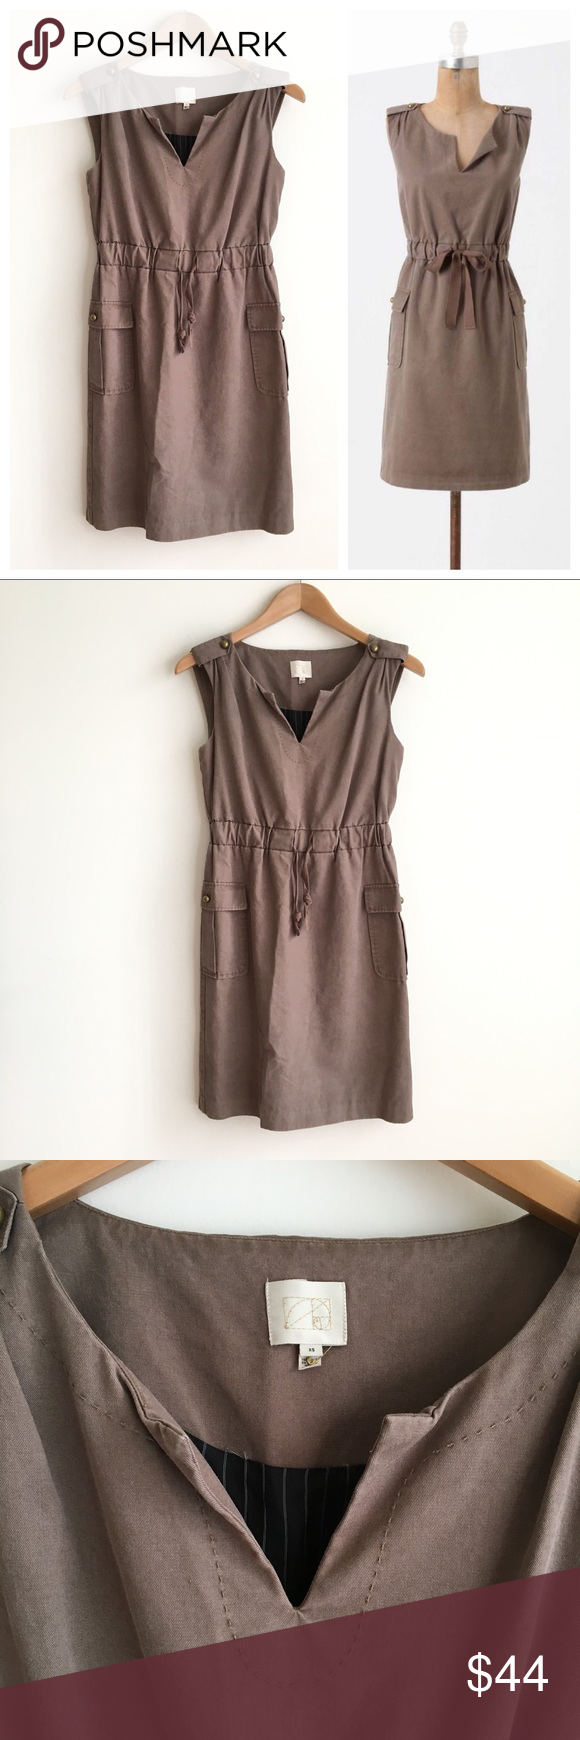 """Coquille Anthropolgie Brown Taupe Utility Dress """"Attention to Detail"""" dress. Sleeveless dress with split neckline. Button detailing on shoulders and side pockets. Cinched at waist with drawstring. . Fully lined. Shell is 51% cotton, 49% tencel. Excellent condition. Anthropologie Dresses"""